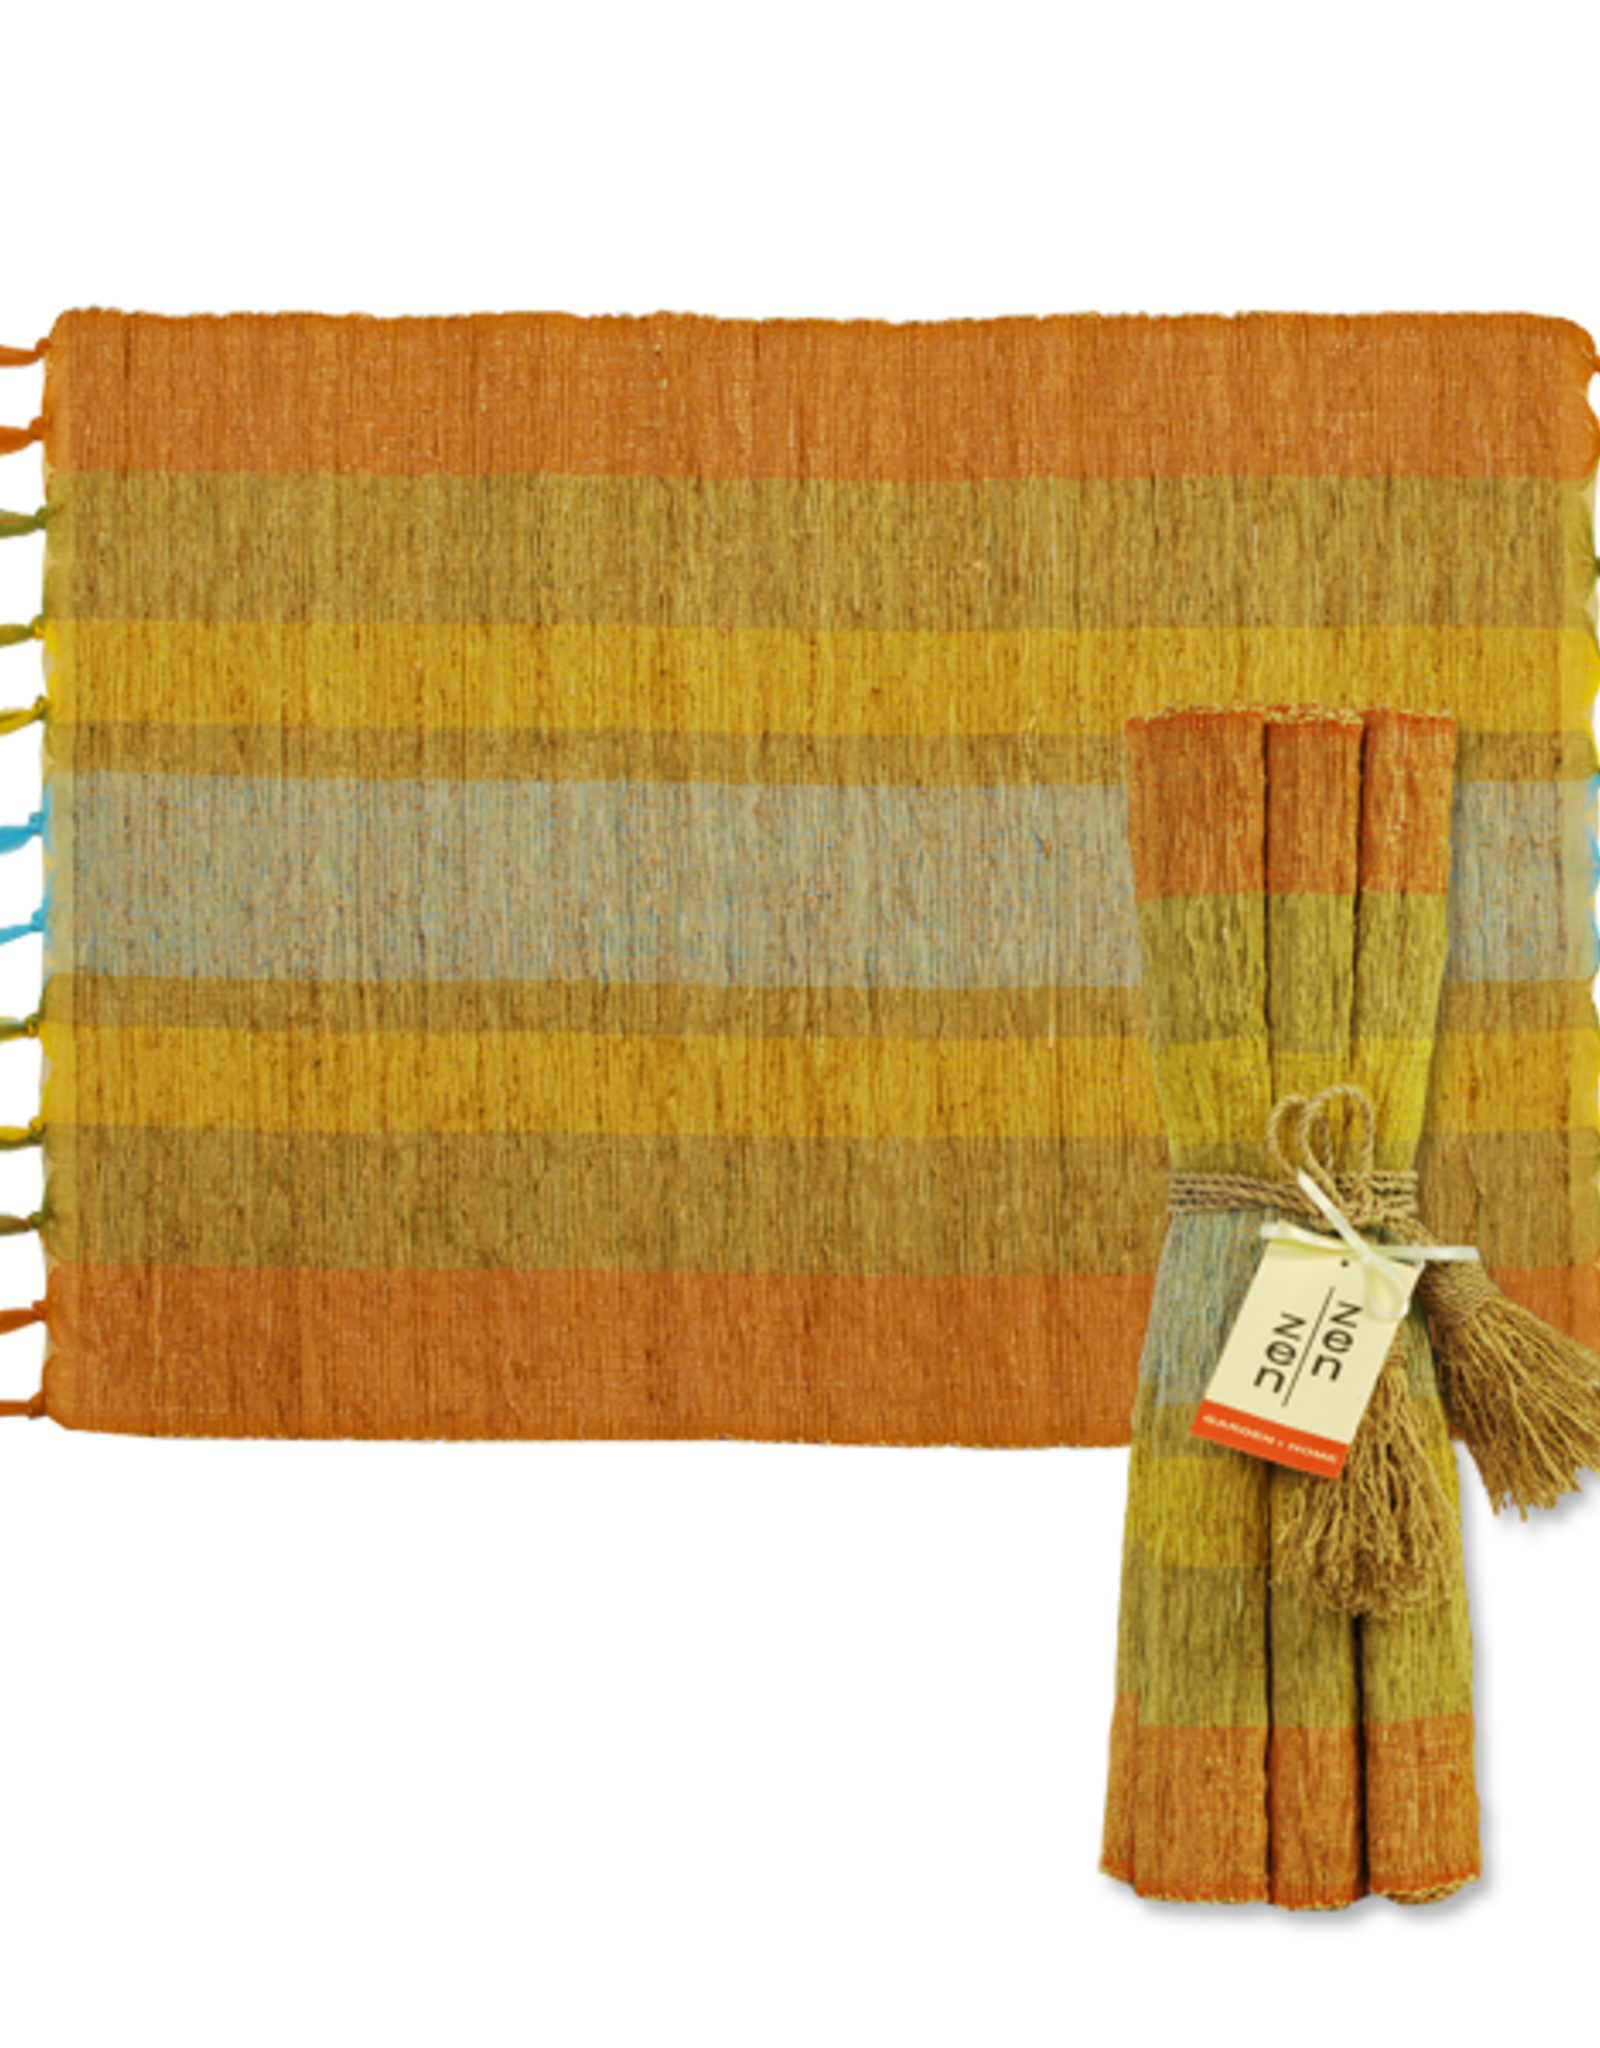 Vetiver Placemat Set of 6 - Fiesta Citrus Stripe